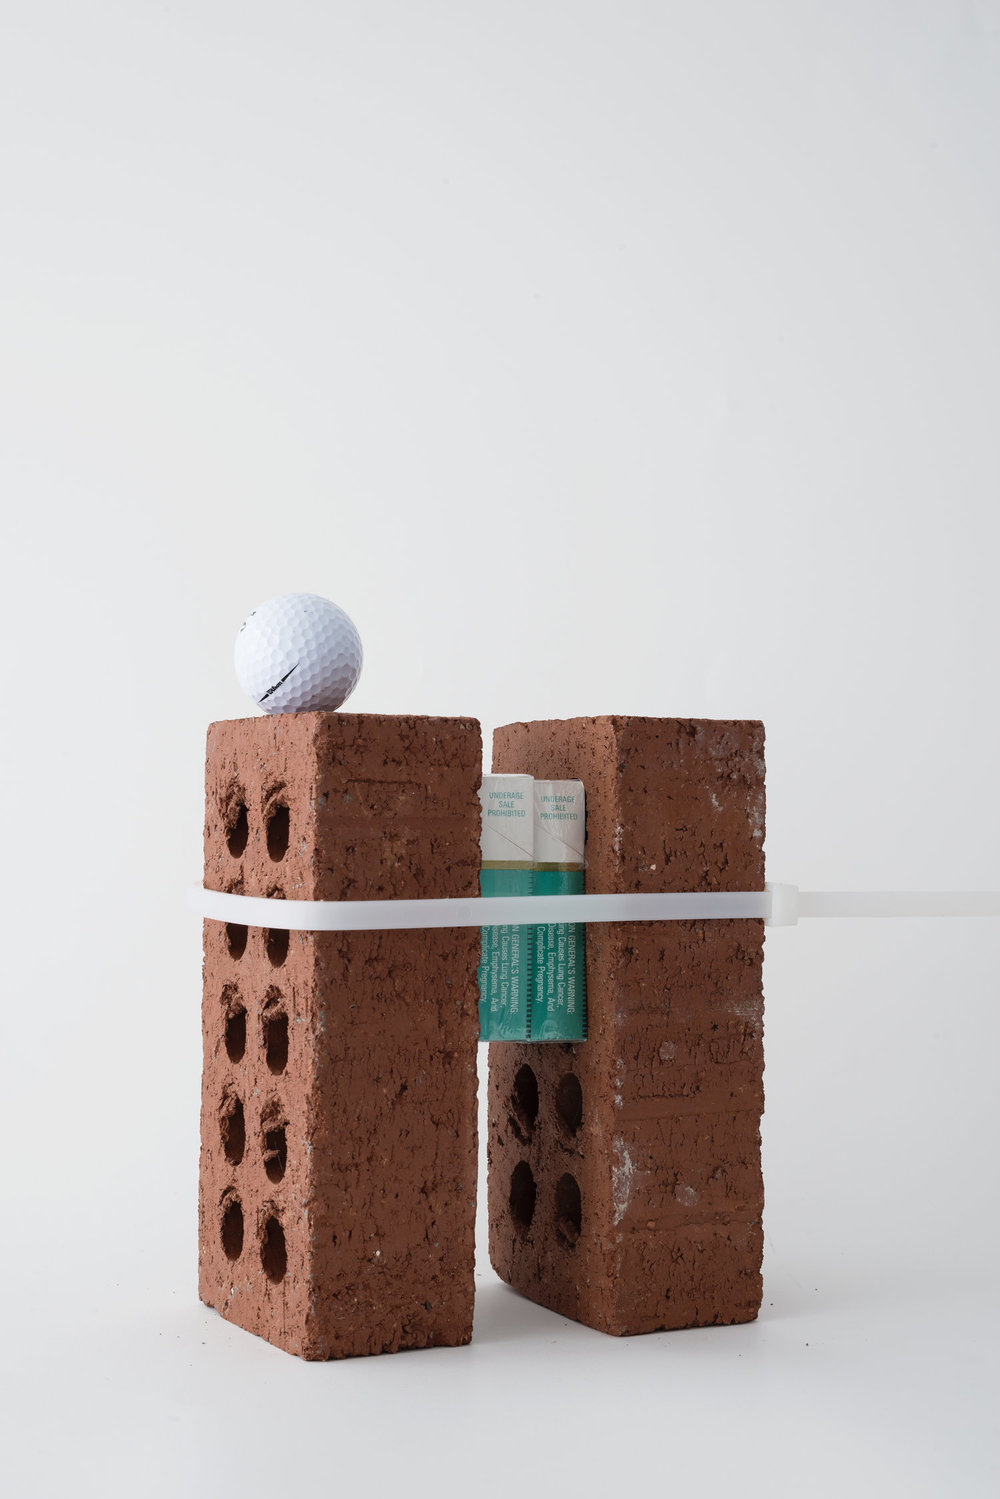 """ Lights On Or Off My Lungs""  Golf Ball, Plasic, Bricks, Packs of Cigarettes.  Dimensions Variable  2018  © Messiah Joshua LLC"